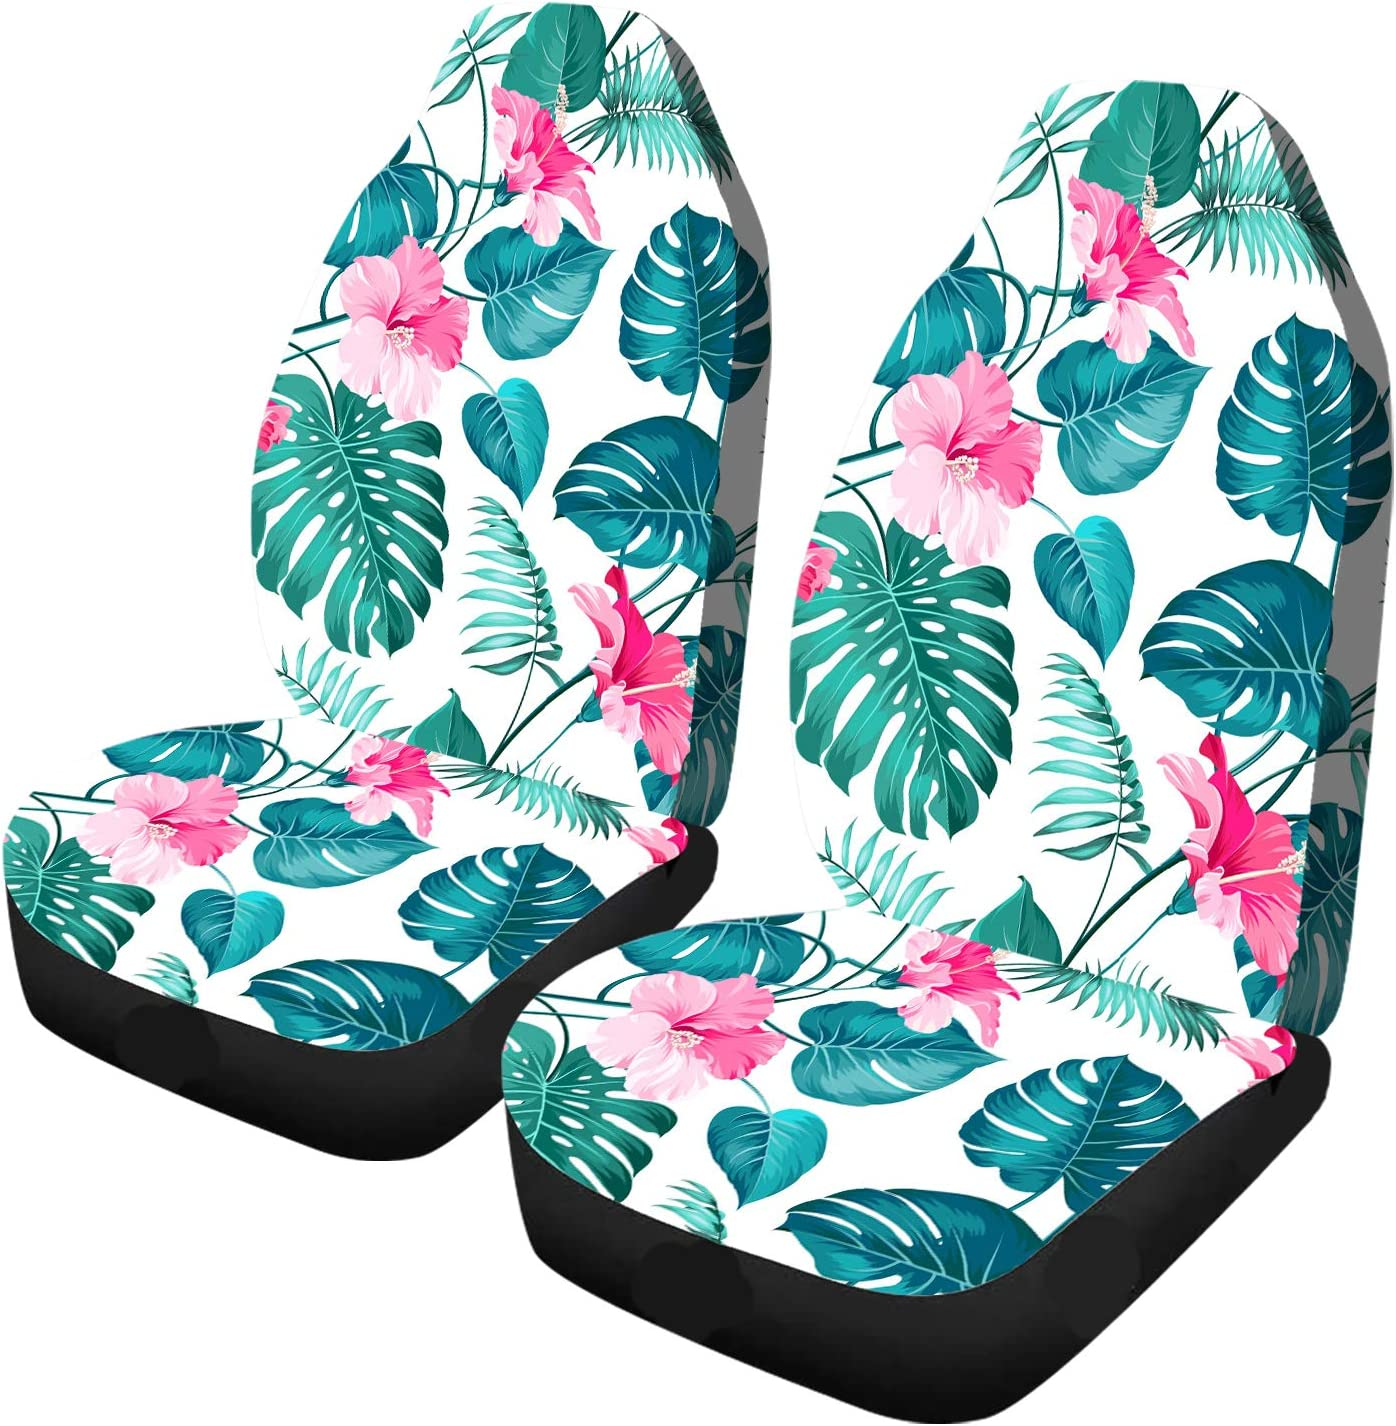 Car Seat Covers Tropical Cash special Complete Free Shipping price Hibiscus Hawaii Flowers Summer Lea Palm